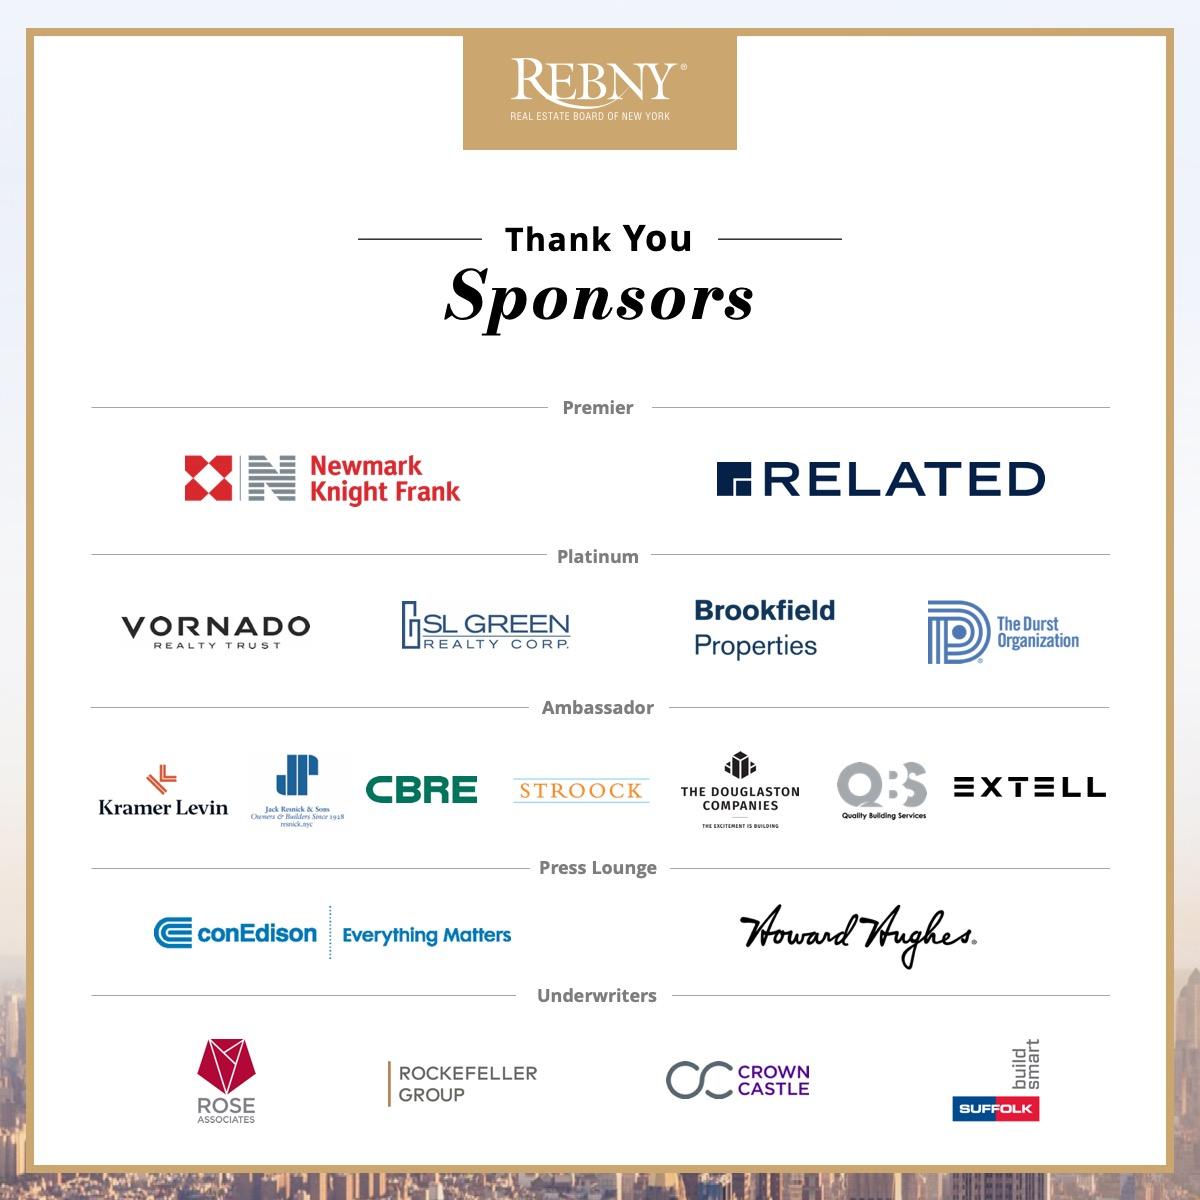 Sponsors of REBNY's 123rd Annual Banquet